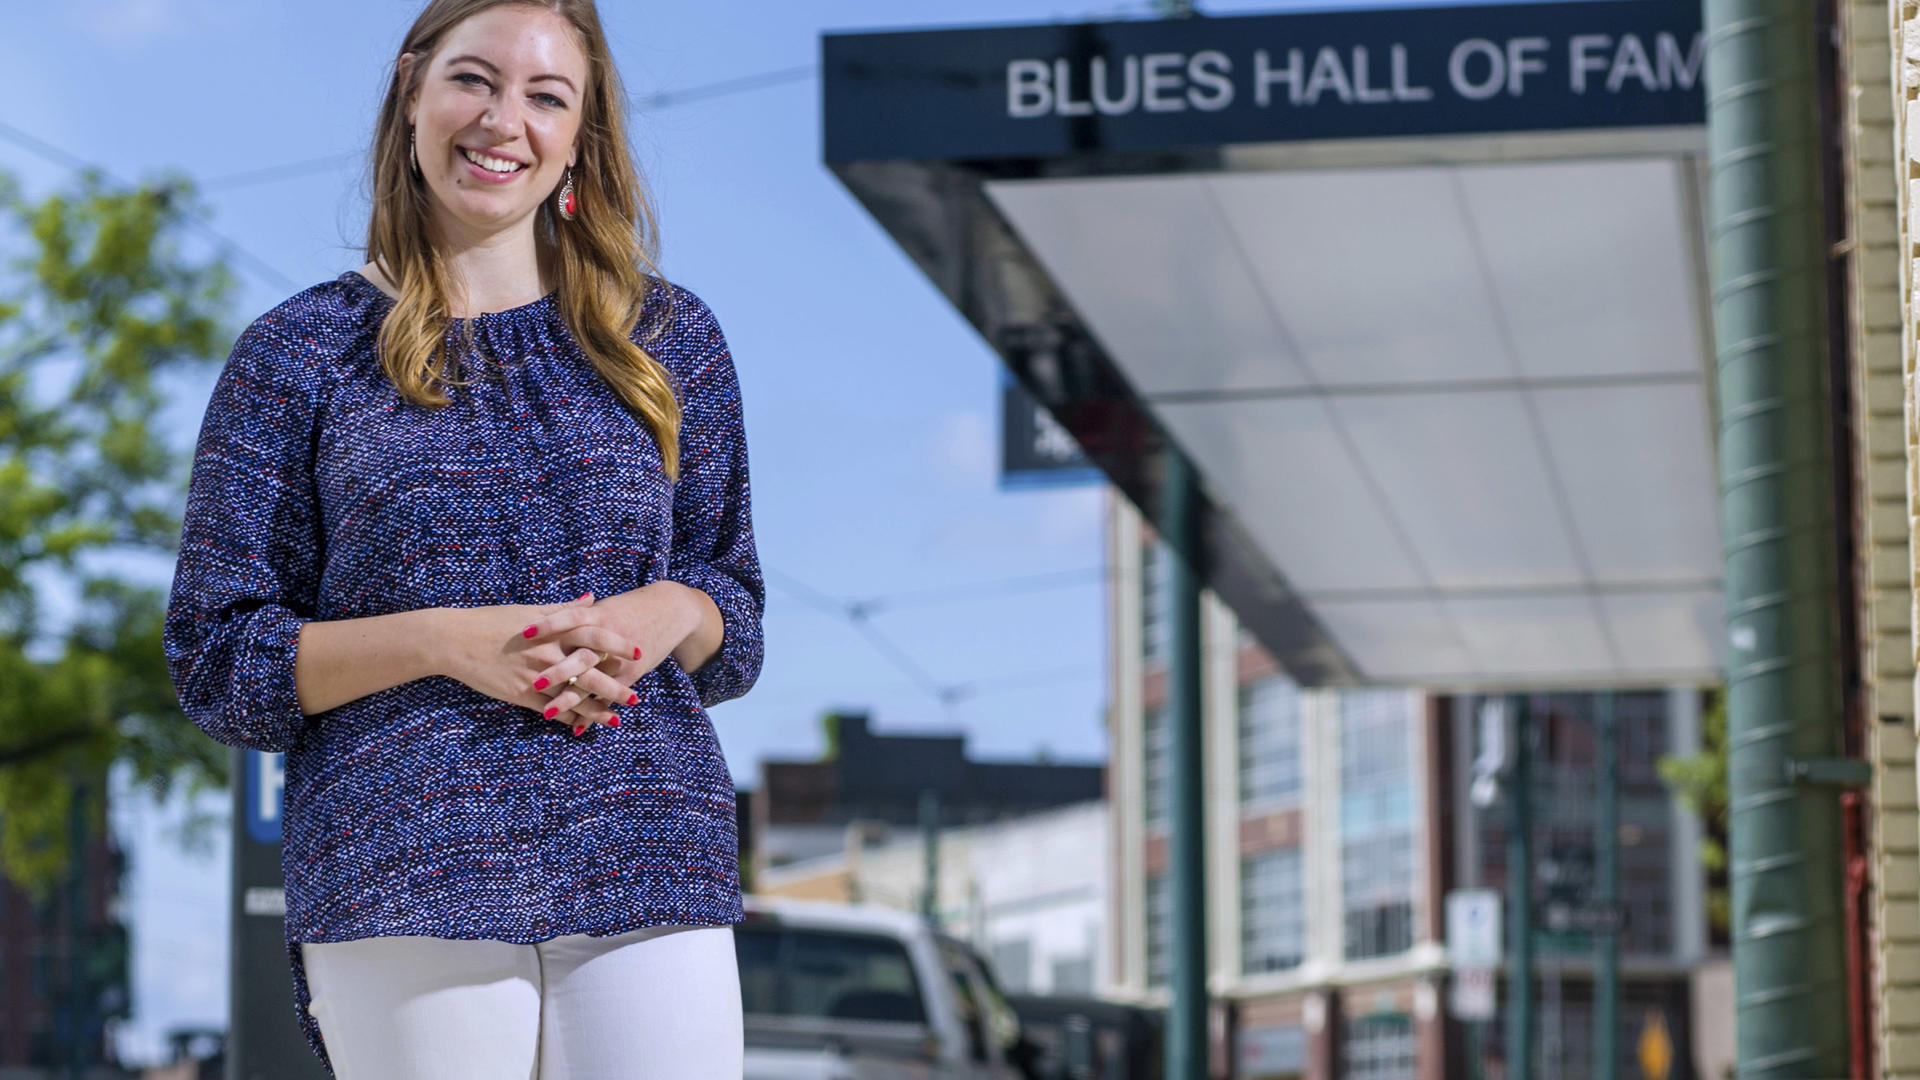 a student standing outside the blues hall of fame